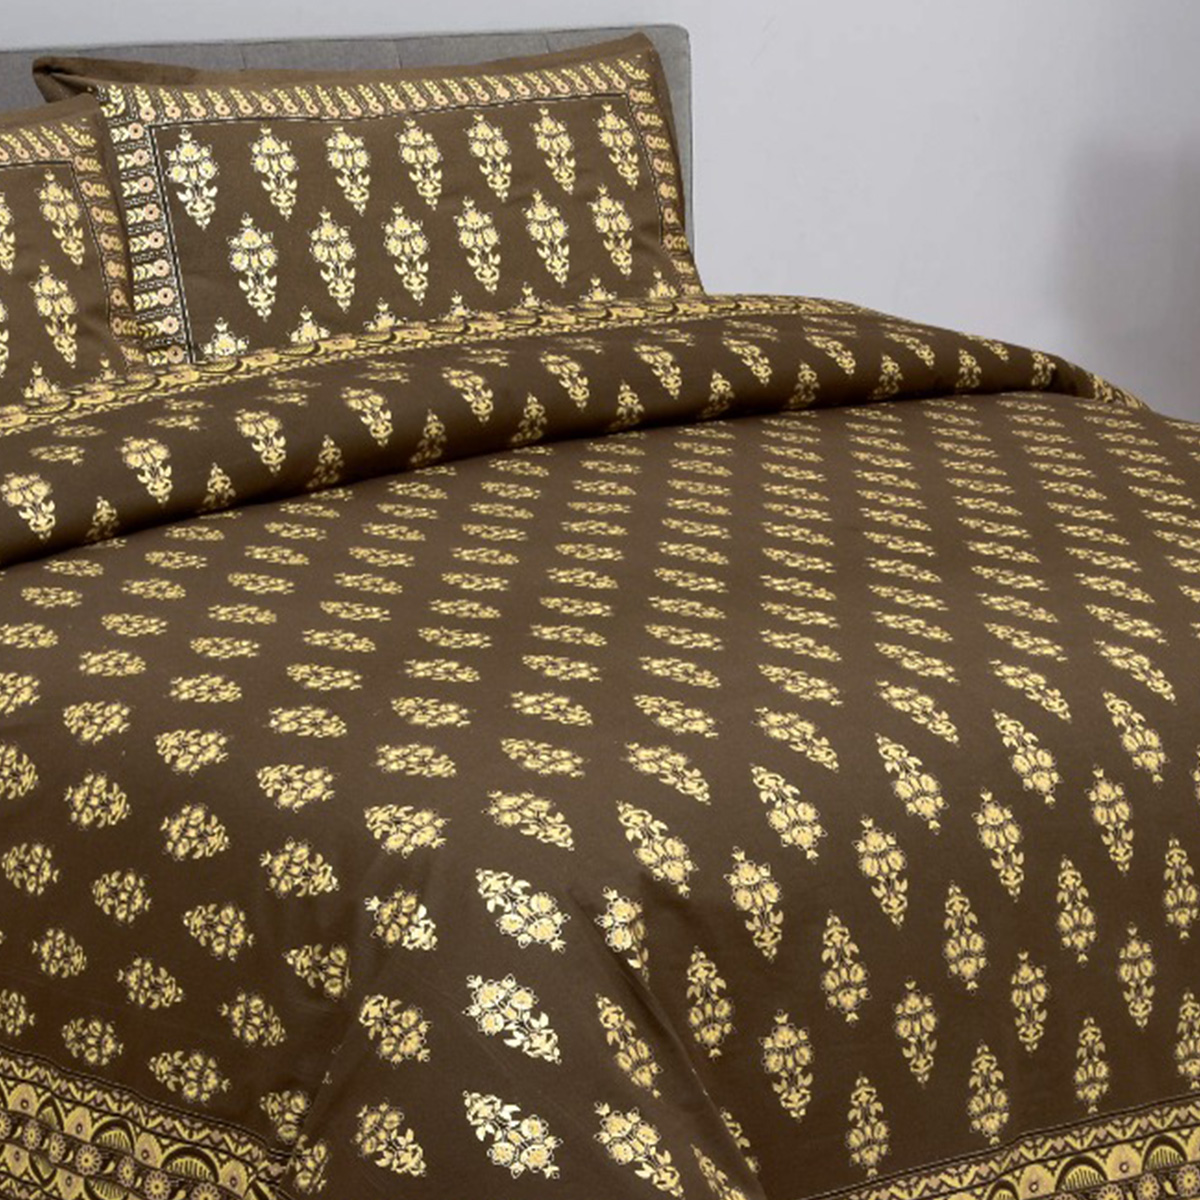 Gleaming Green Printed King Size Bedsheet Comes With 2 Pillow Cover